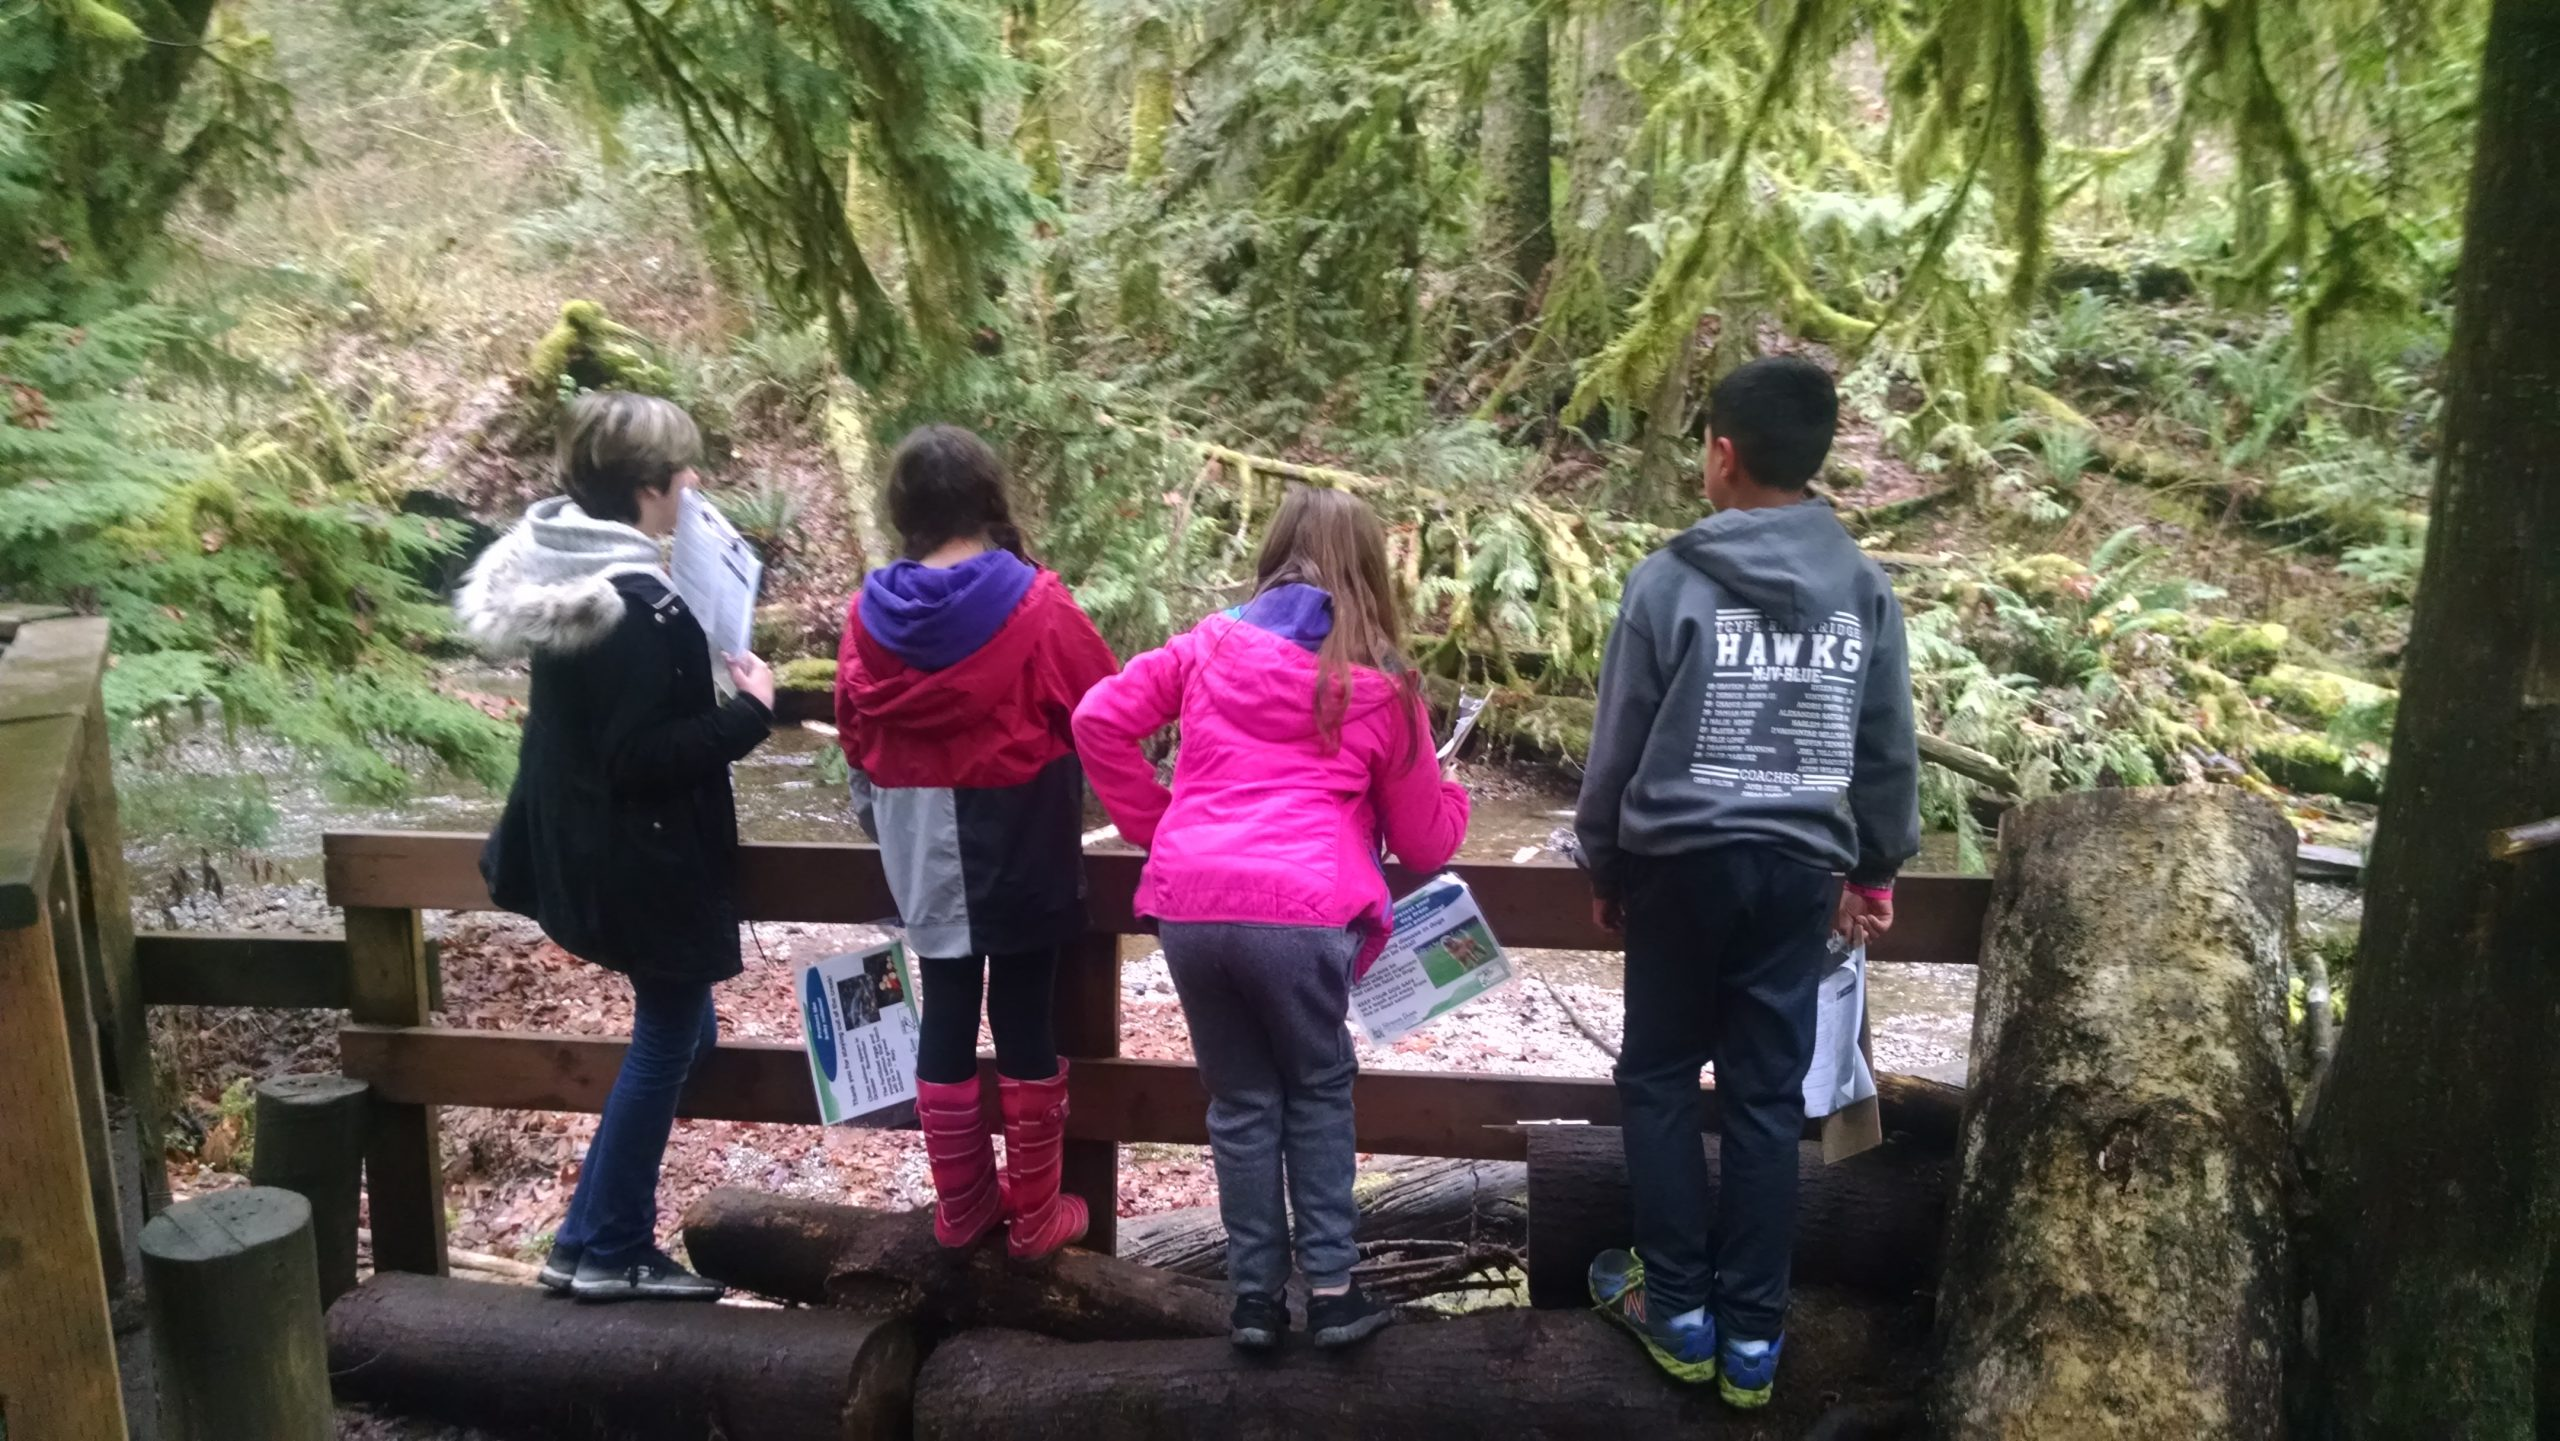 Outdoor photo of four children in hooded raincoats facing away from the camera, standing on logs to look over a fence at a forest creek.